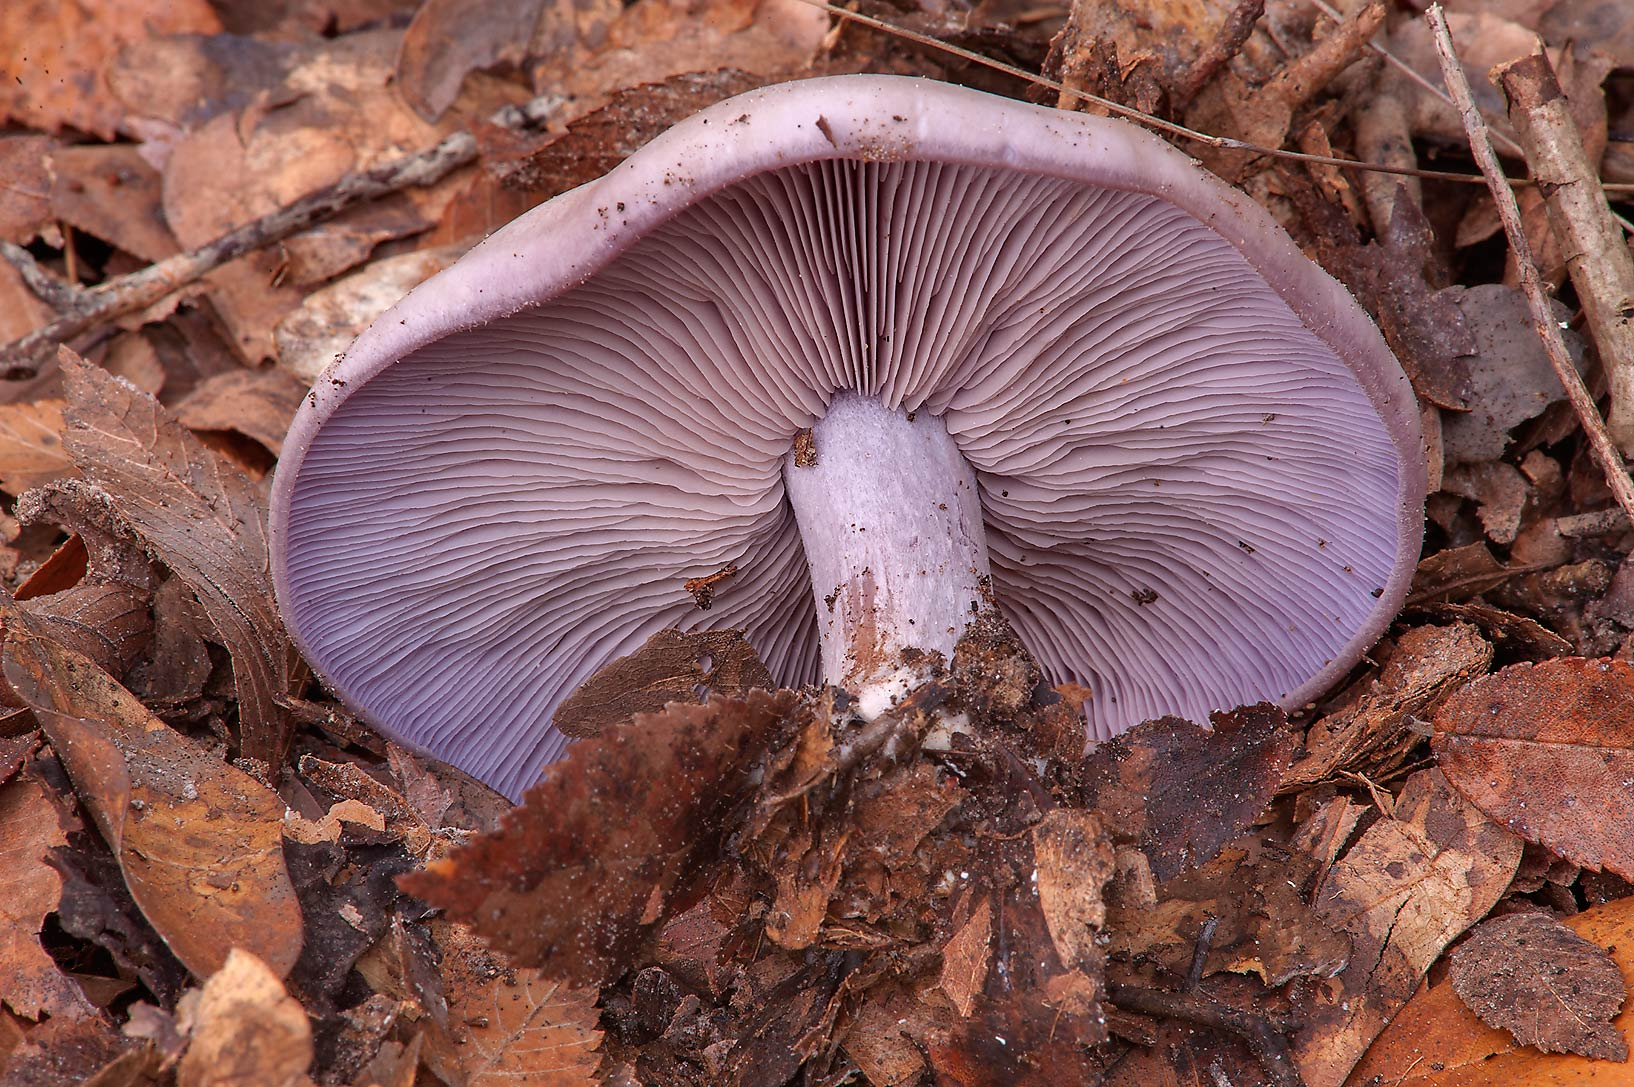 Violet wood blewit mushroom (Clitocybe nuda...Creek Park. College Station, Texas